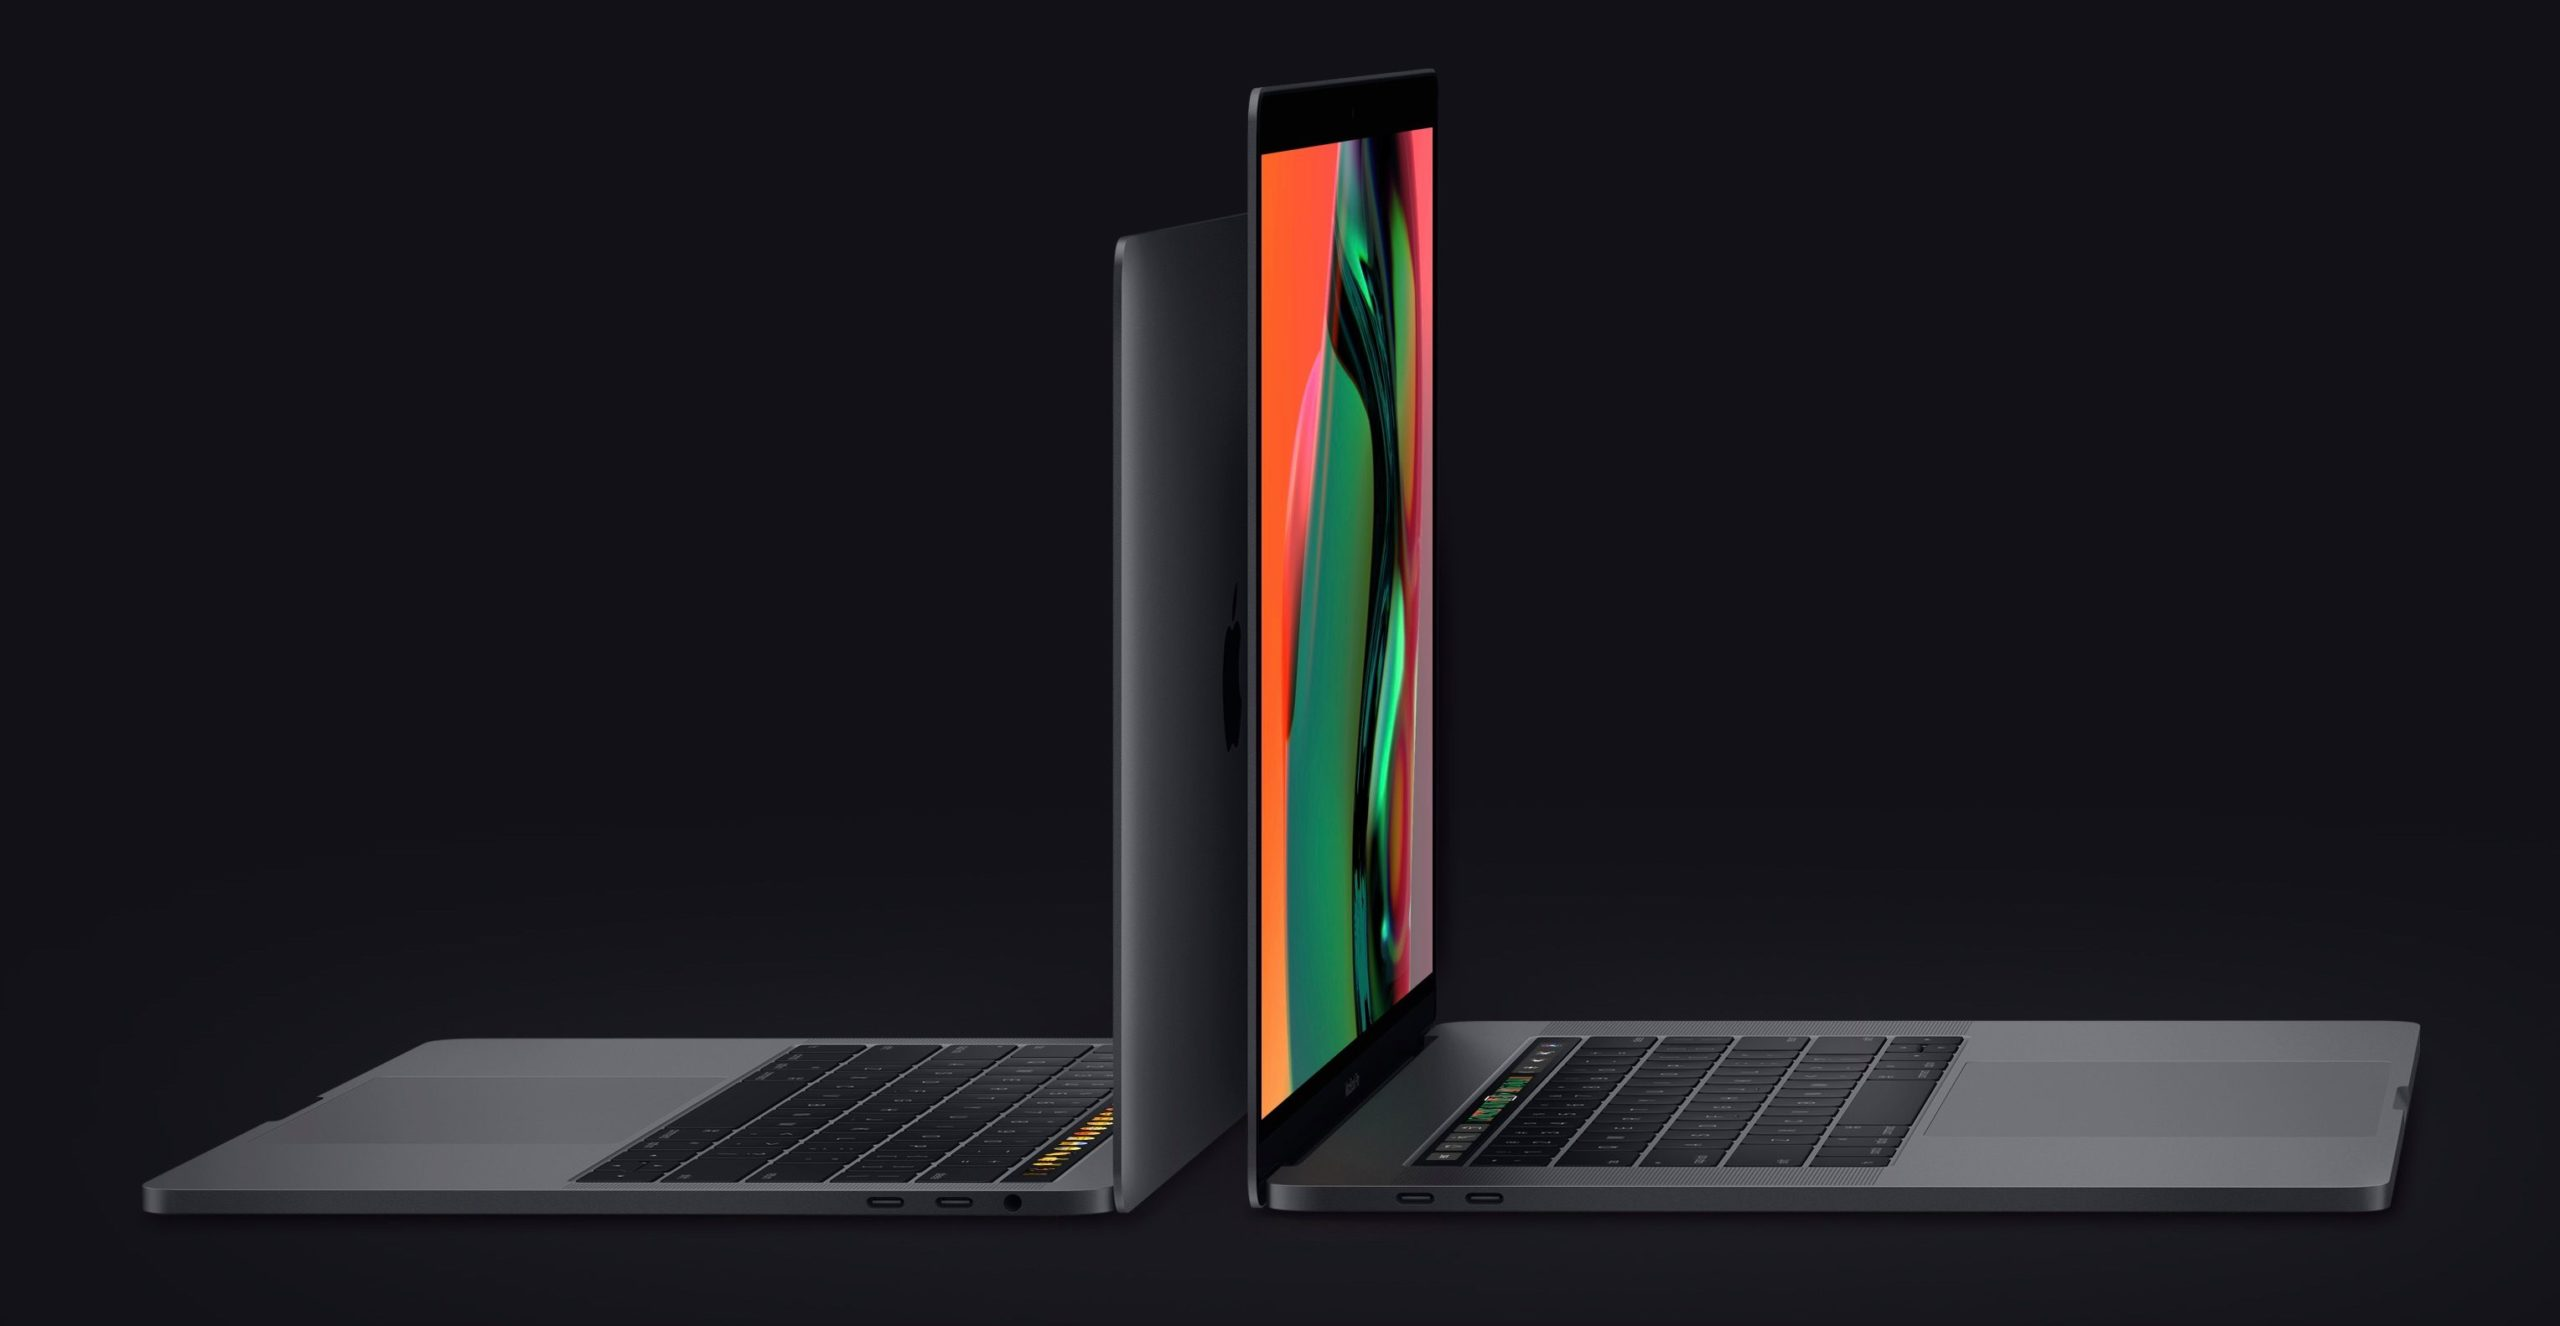 MacBook Air 2020 Specs and Features in iOS 14 Leaks